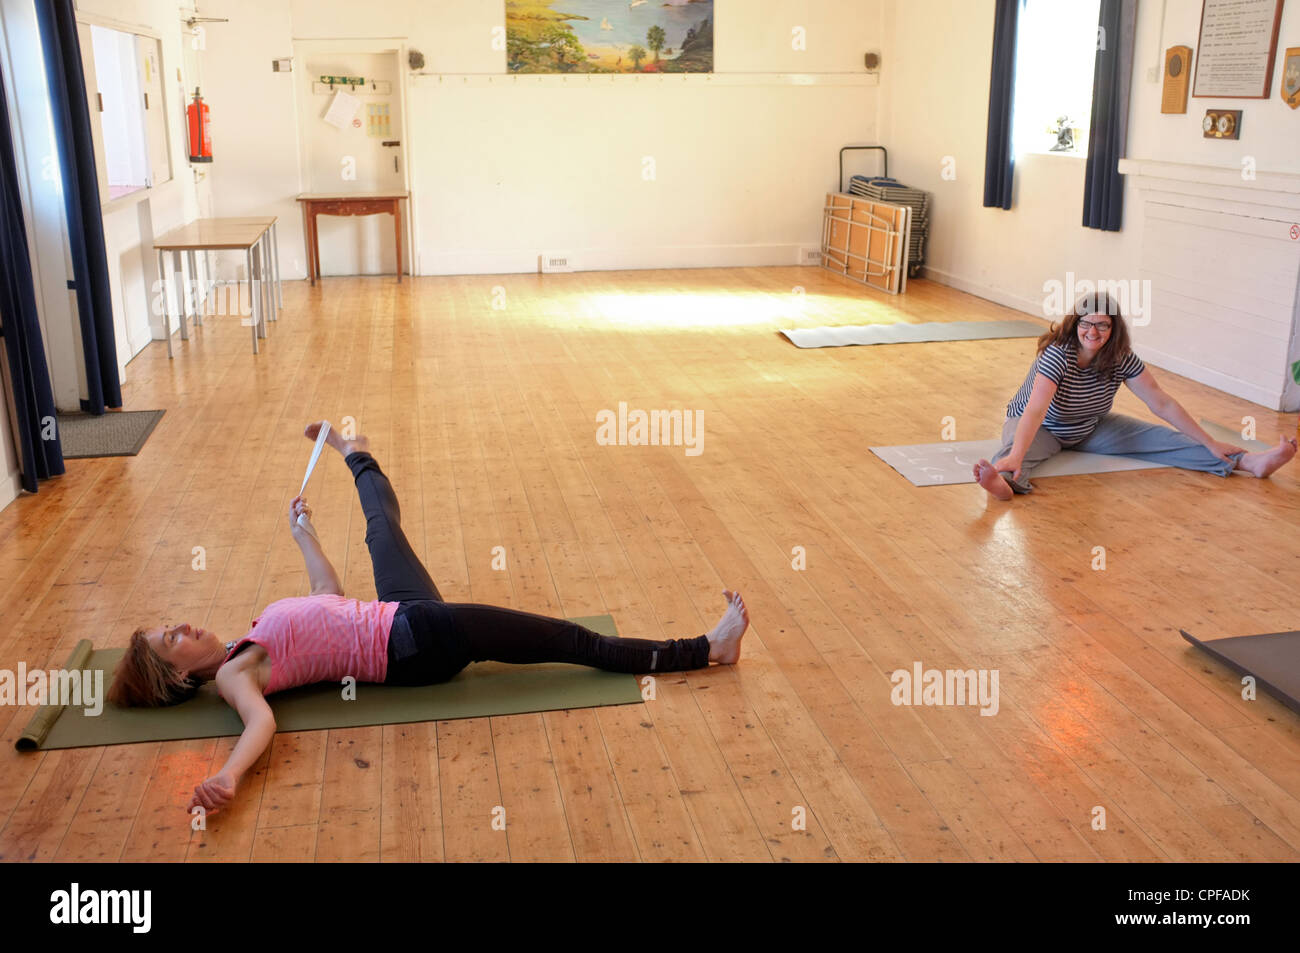 Two women warm up before a yoga class held in a village hall in Cornwall, UK - Stock Image